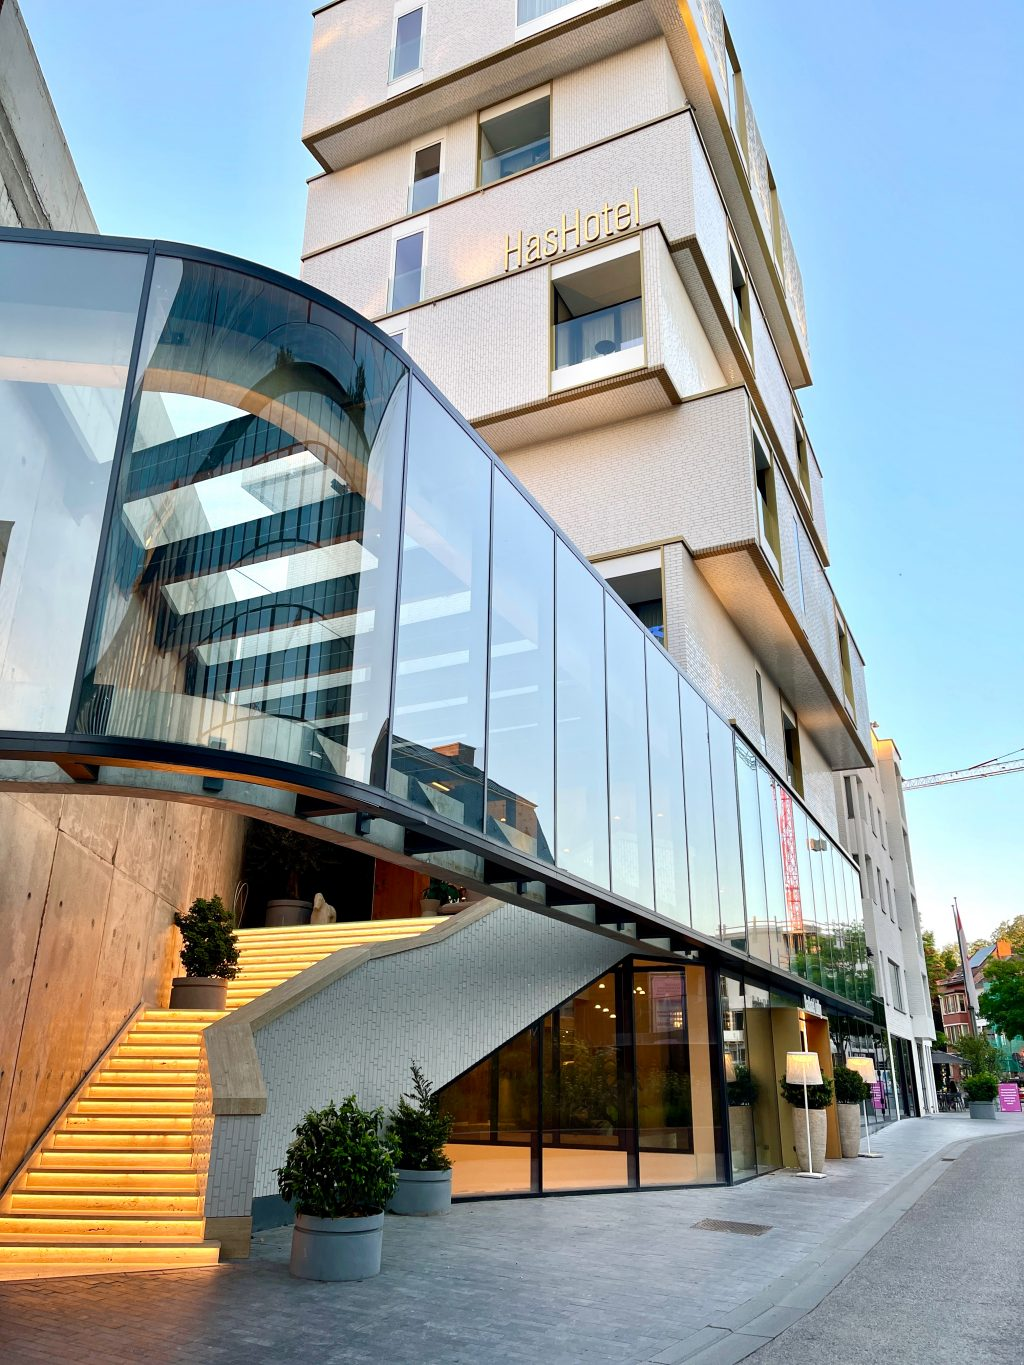 The modern HasHotel looks like the perfect stylish stay in Hasselt! But does it live up to its expectations? Not fully.